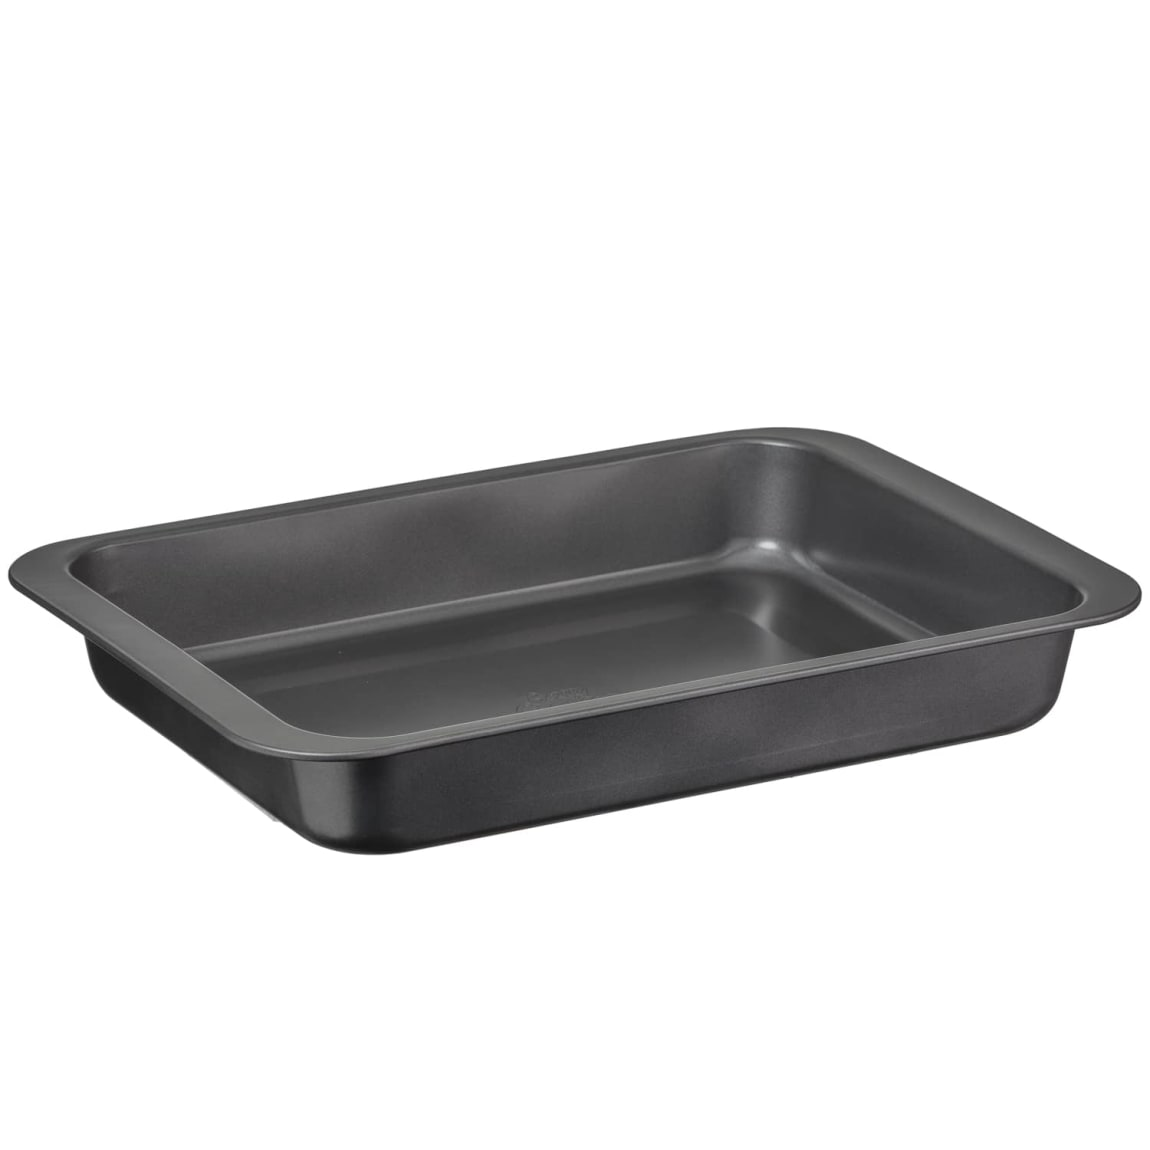 Betty Crocker Non-Stick Rectangular Pan - Small